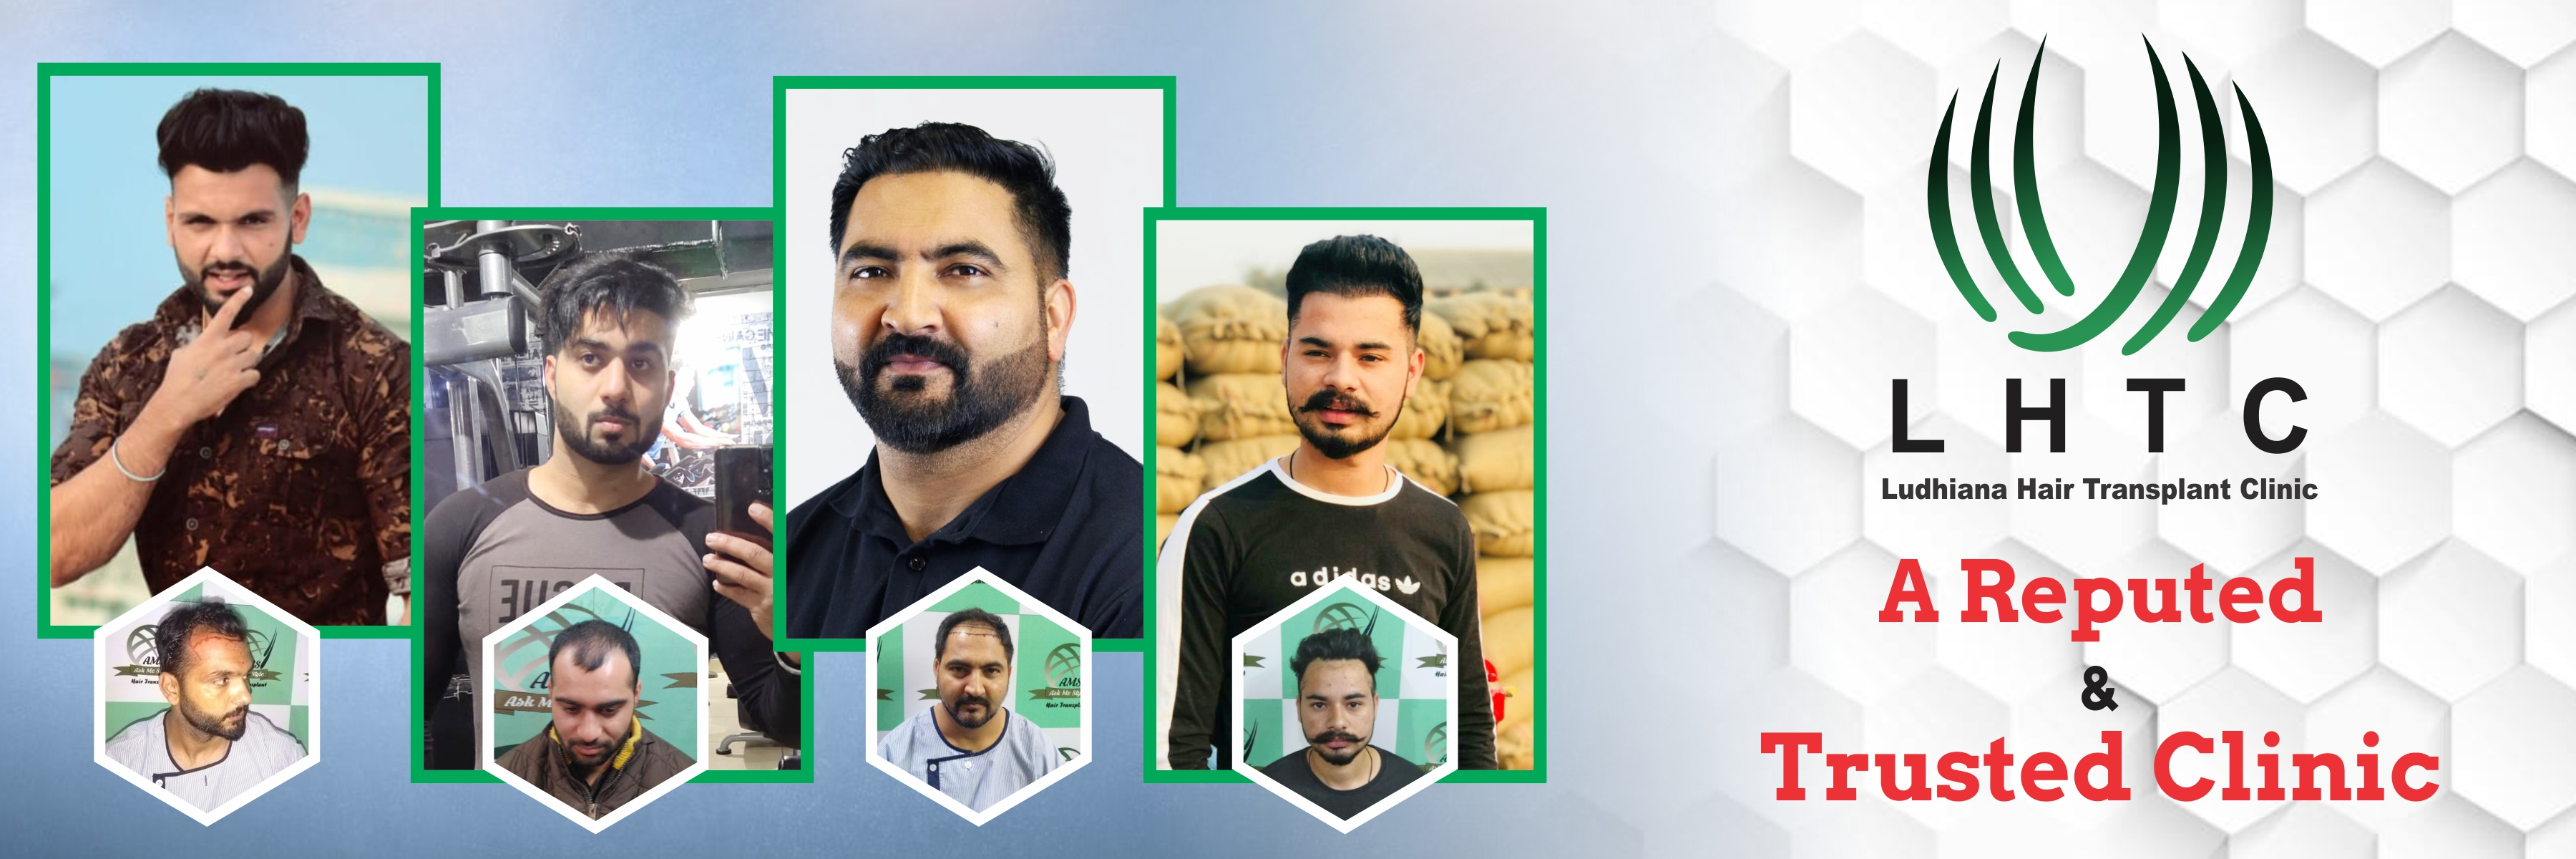 FUE Hair Transplant Clinic in Punjab